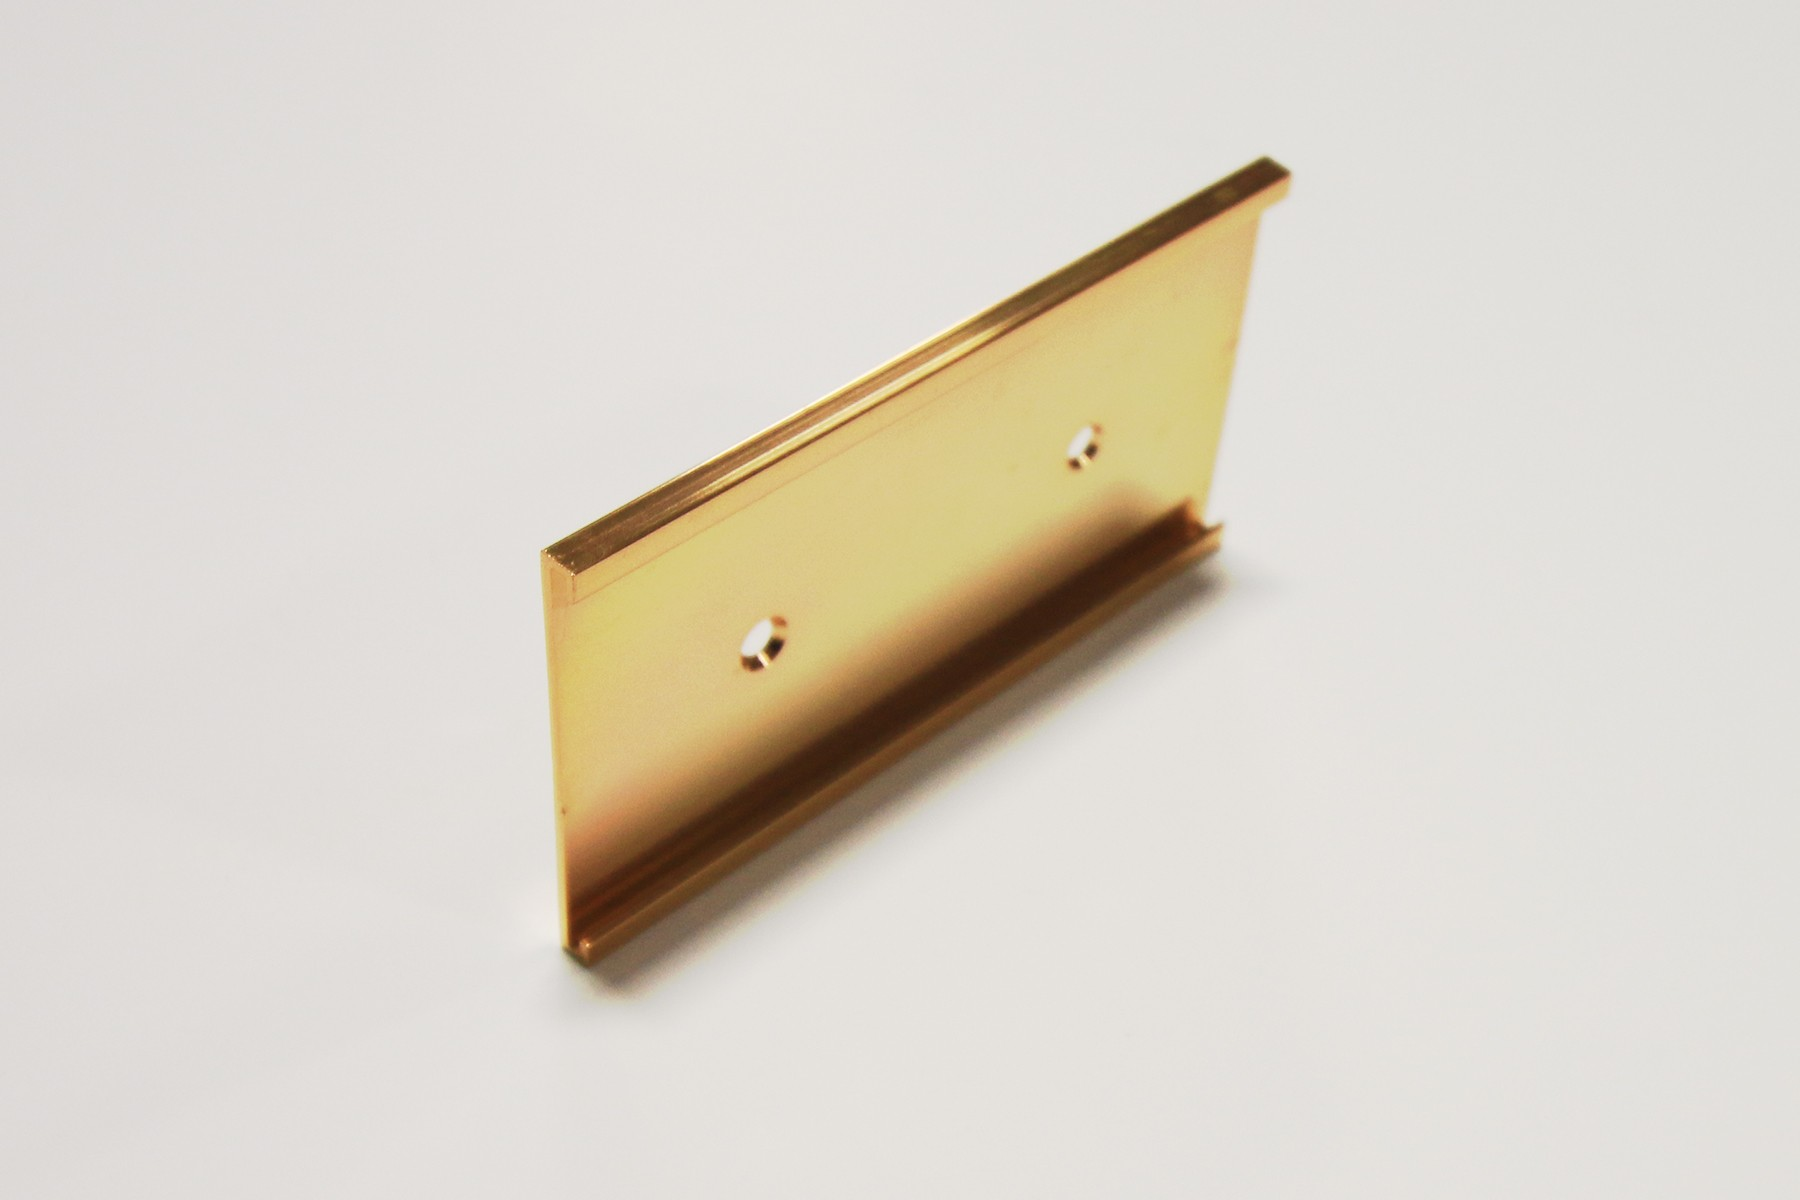 2 x 4 Wall Holder, Gold